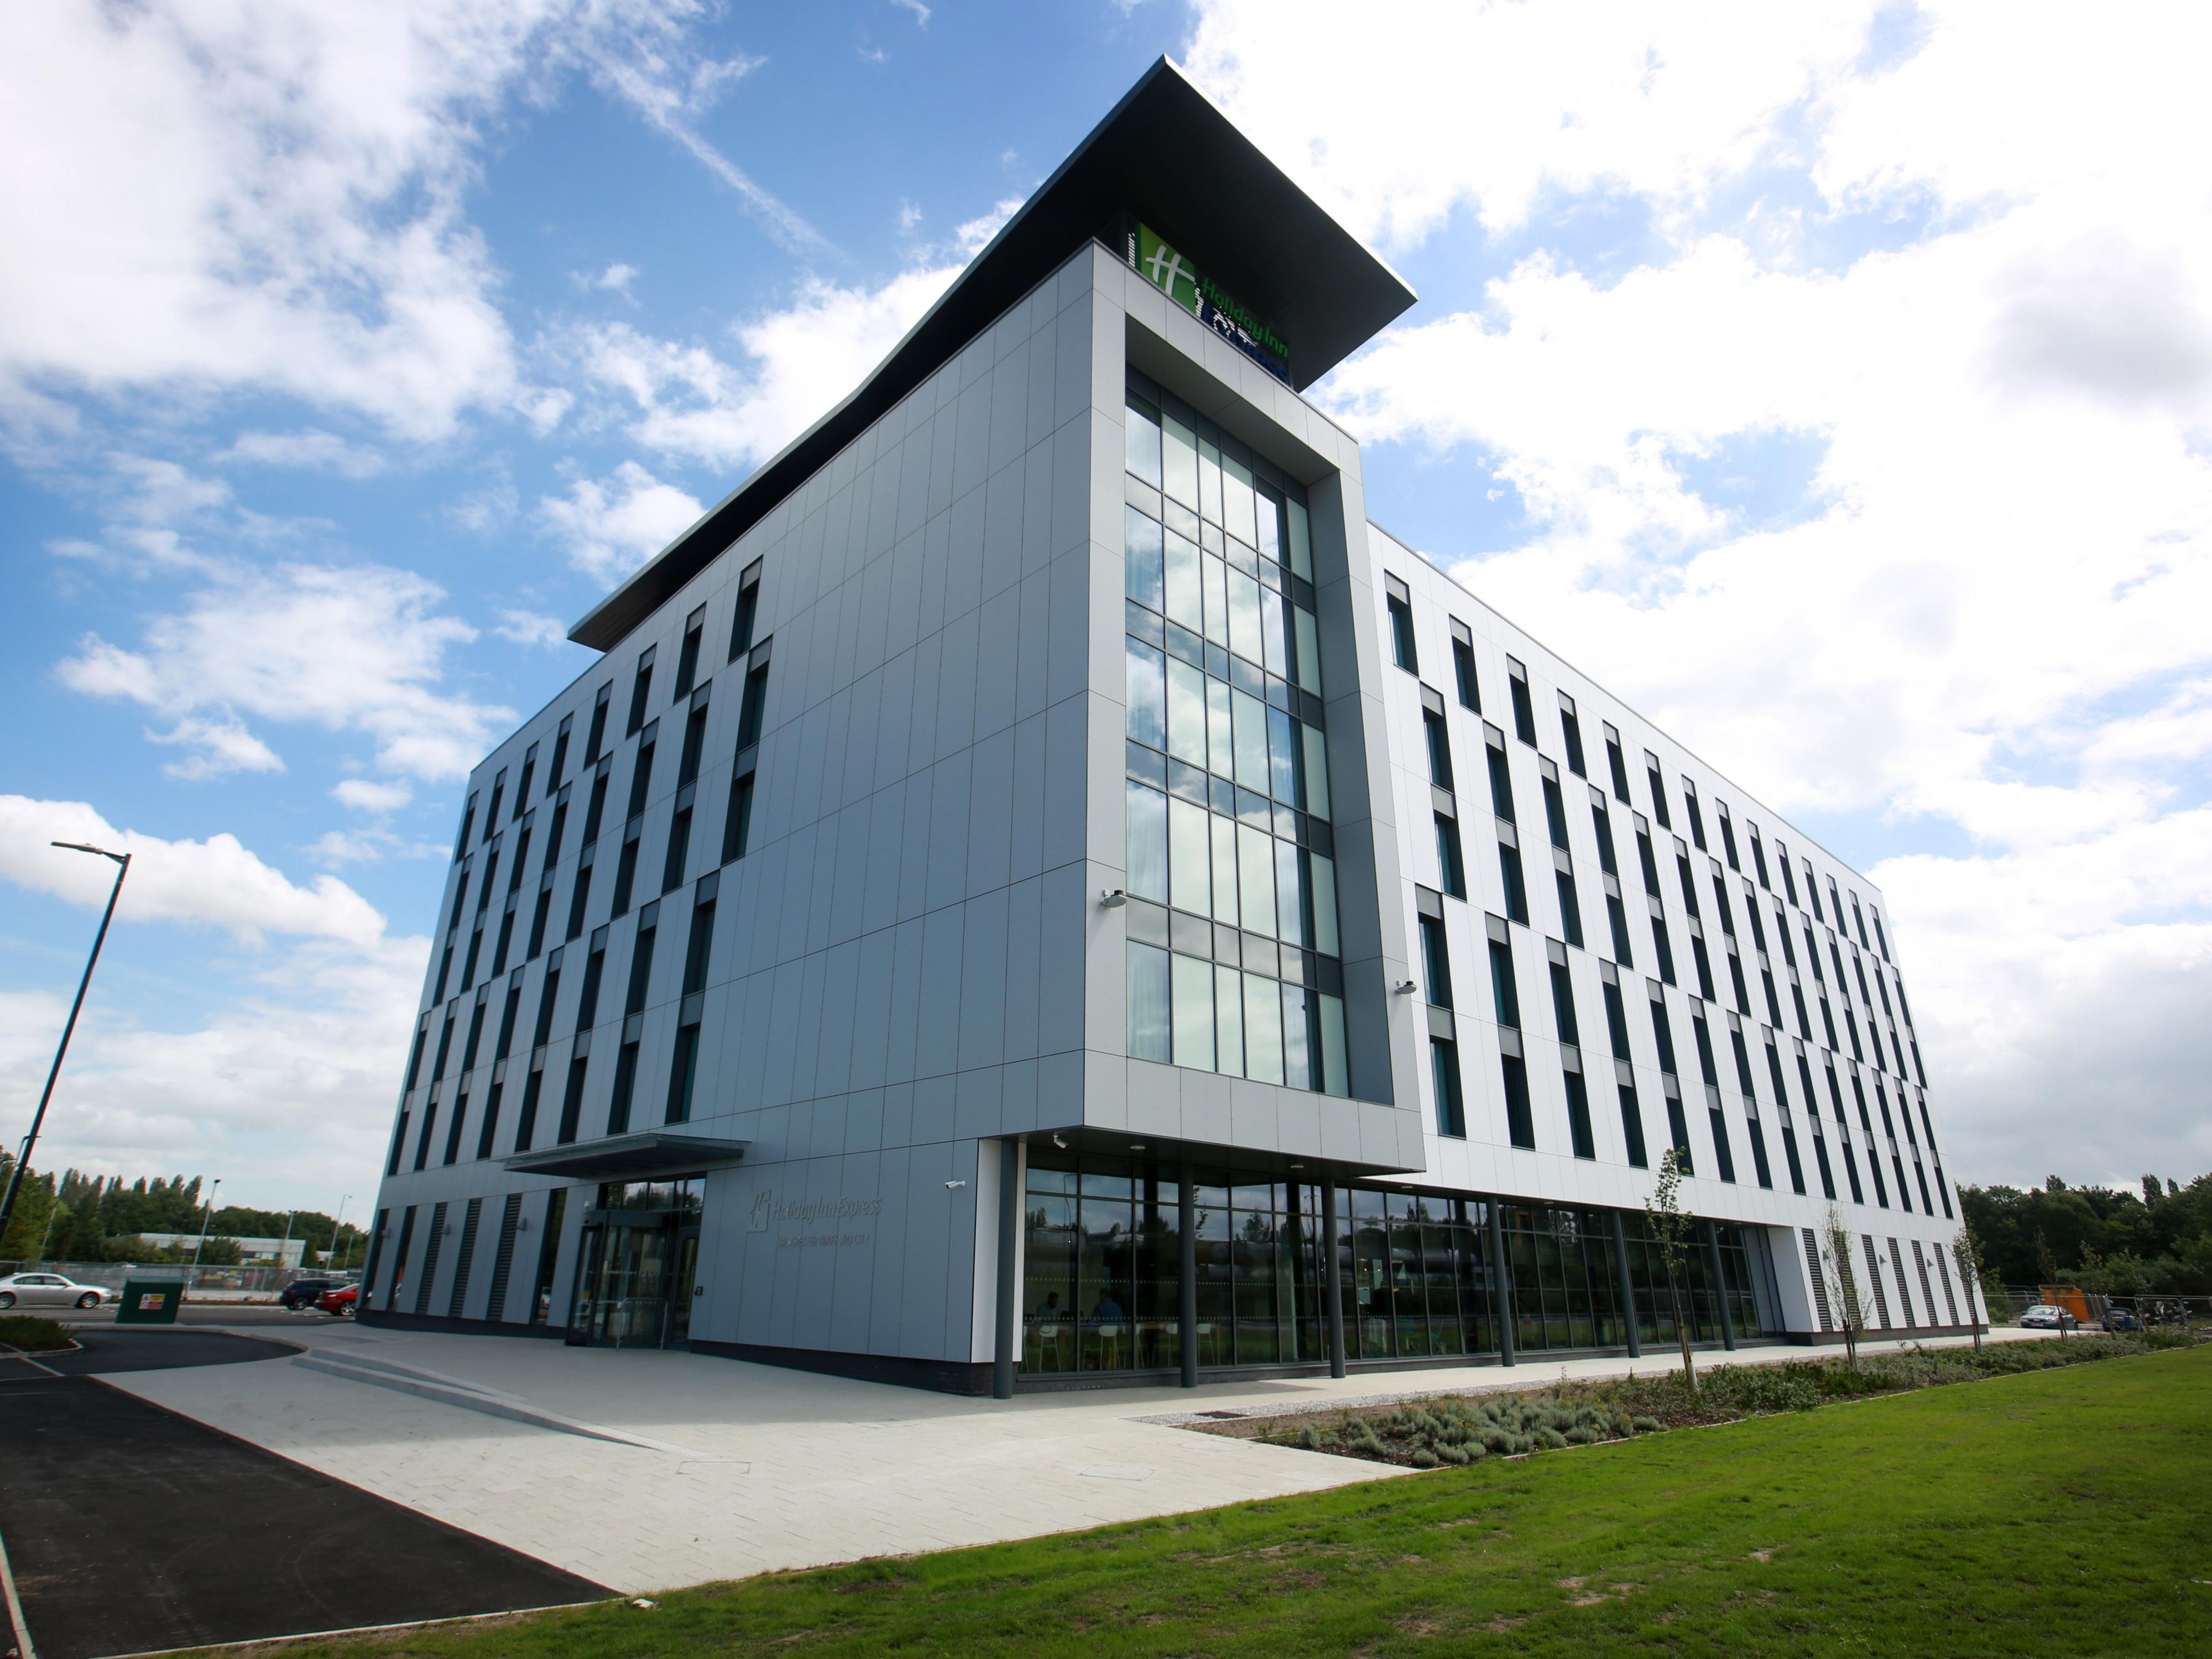 Holiday Inn Express Hotel Manchester - TRAFFORDCITY